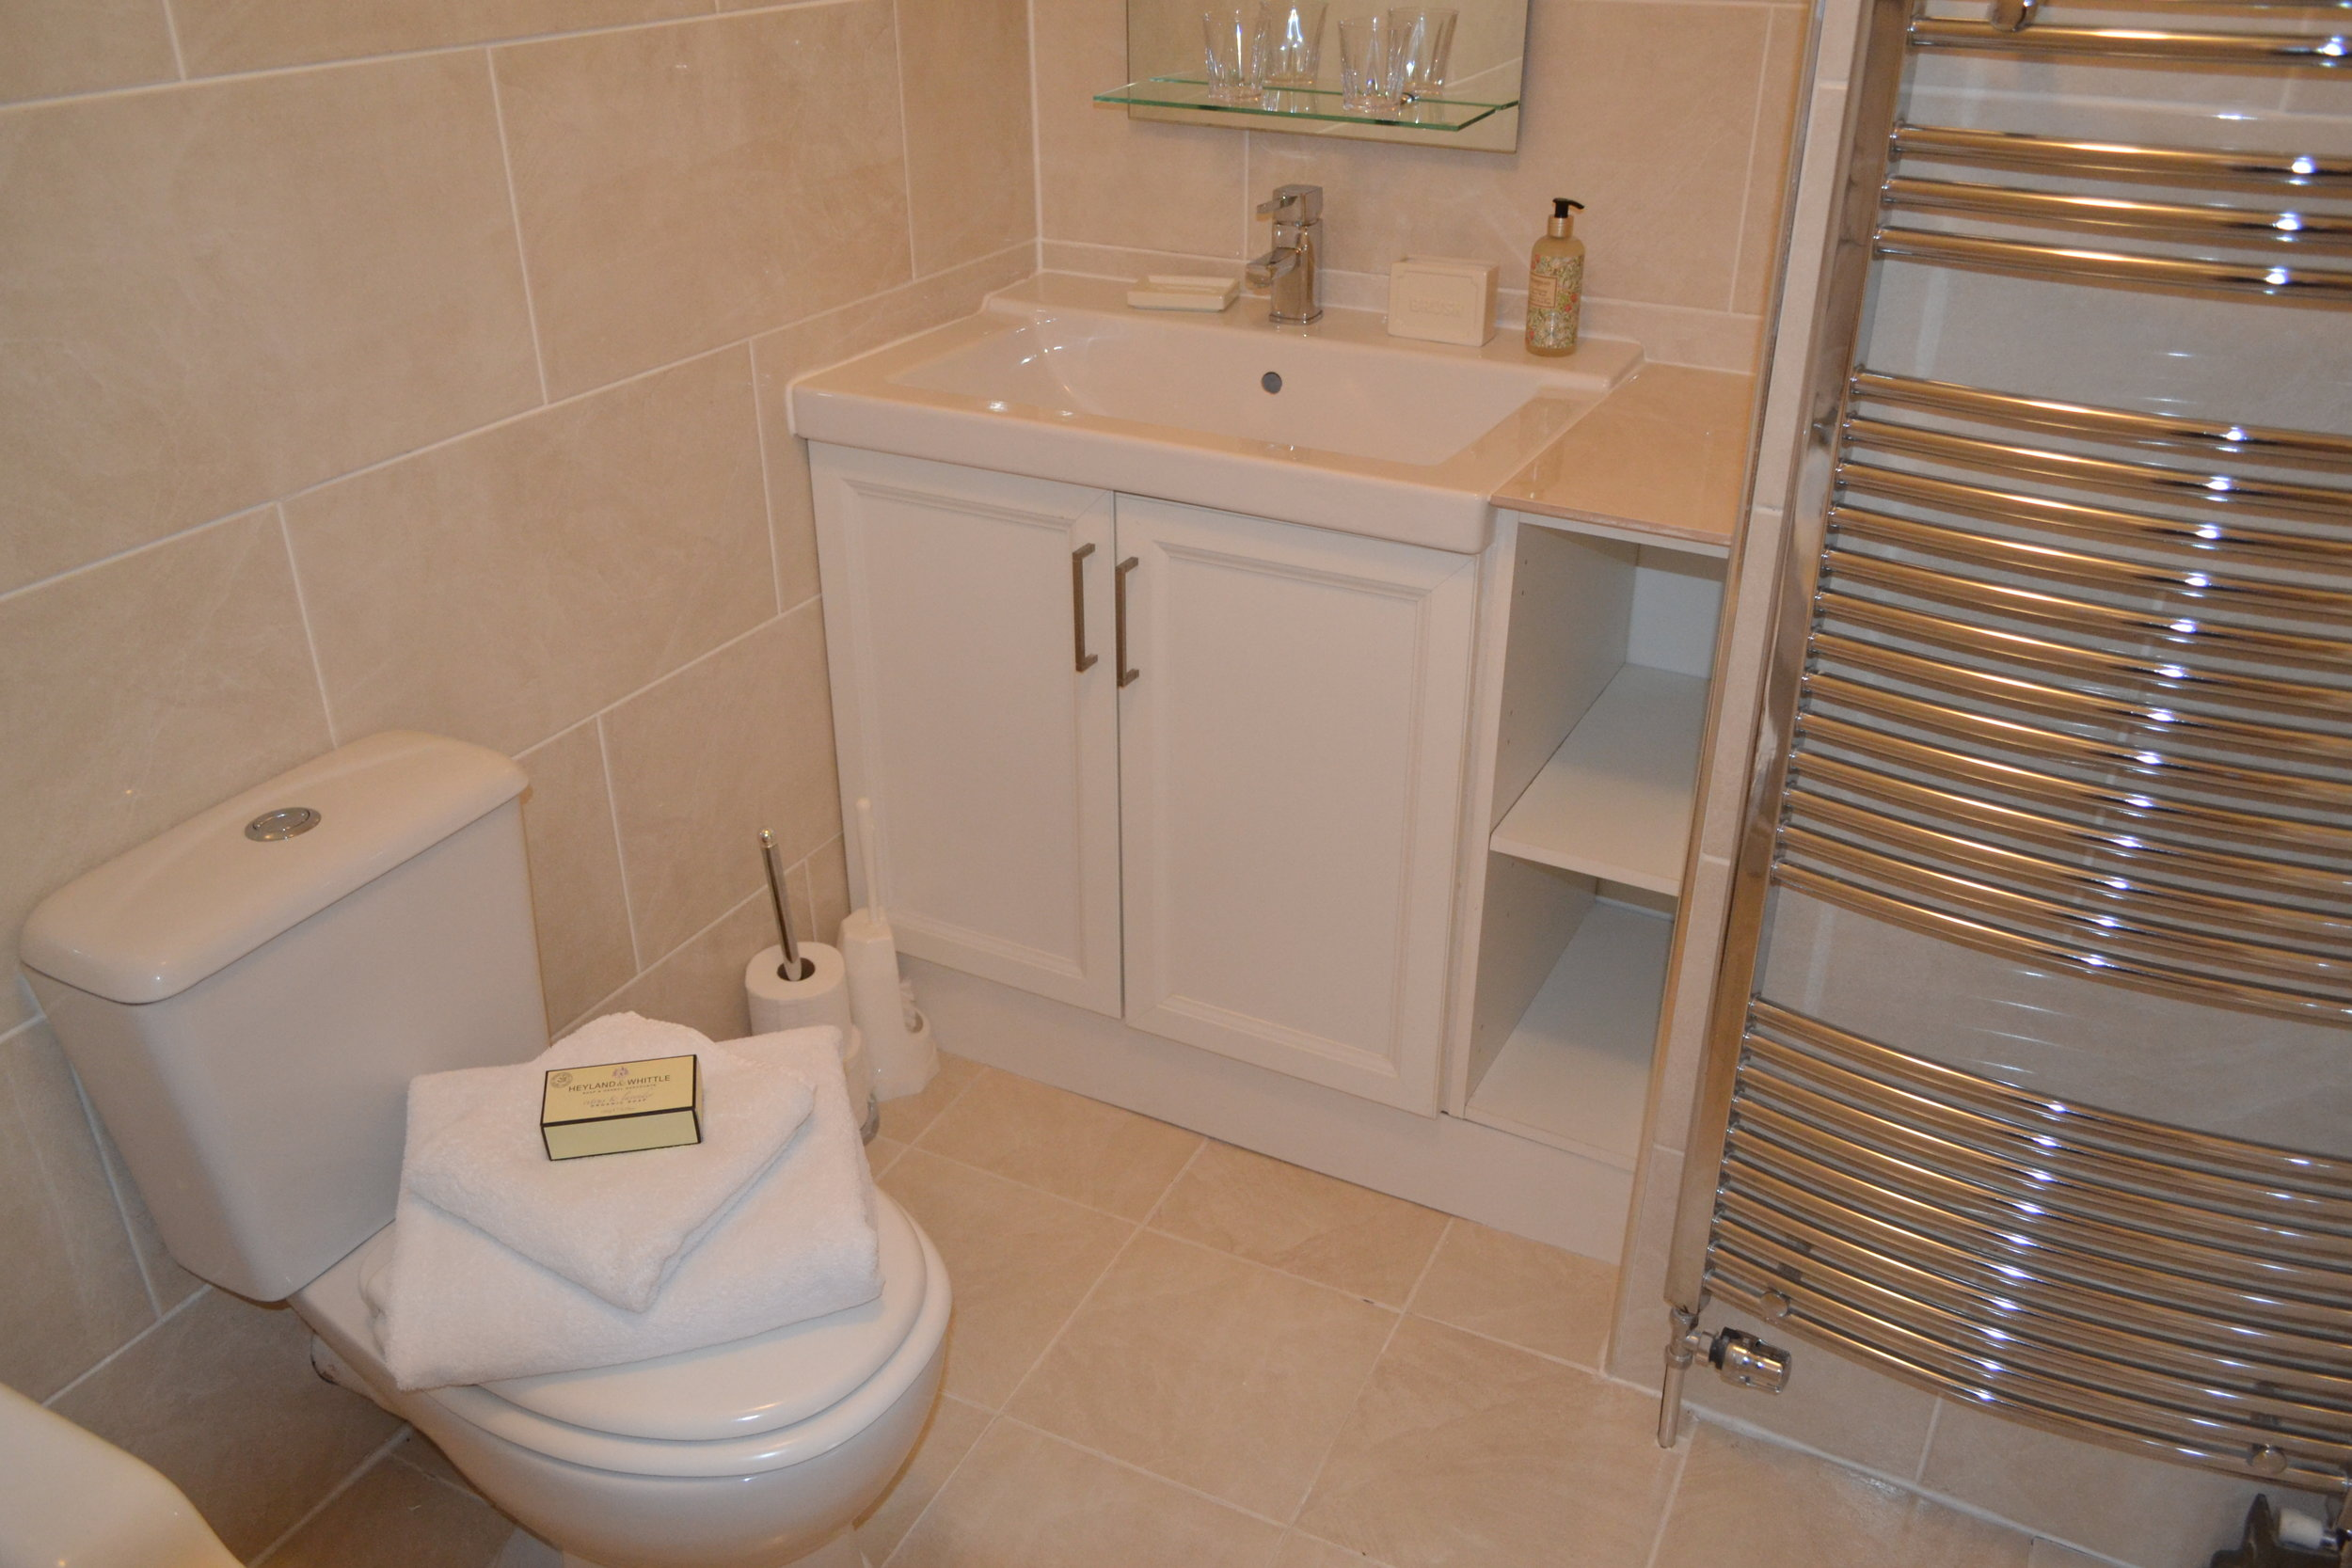 The Ridge - Bedroom1 Ensuite.JPG